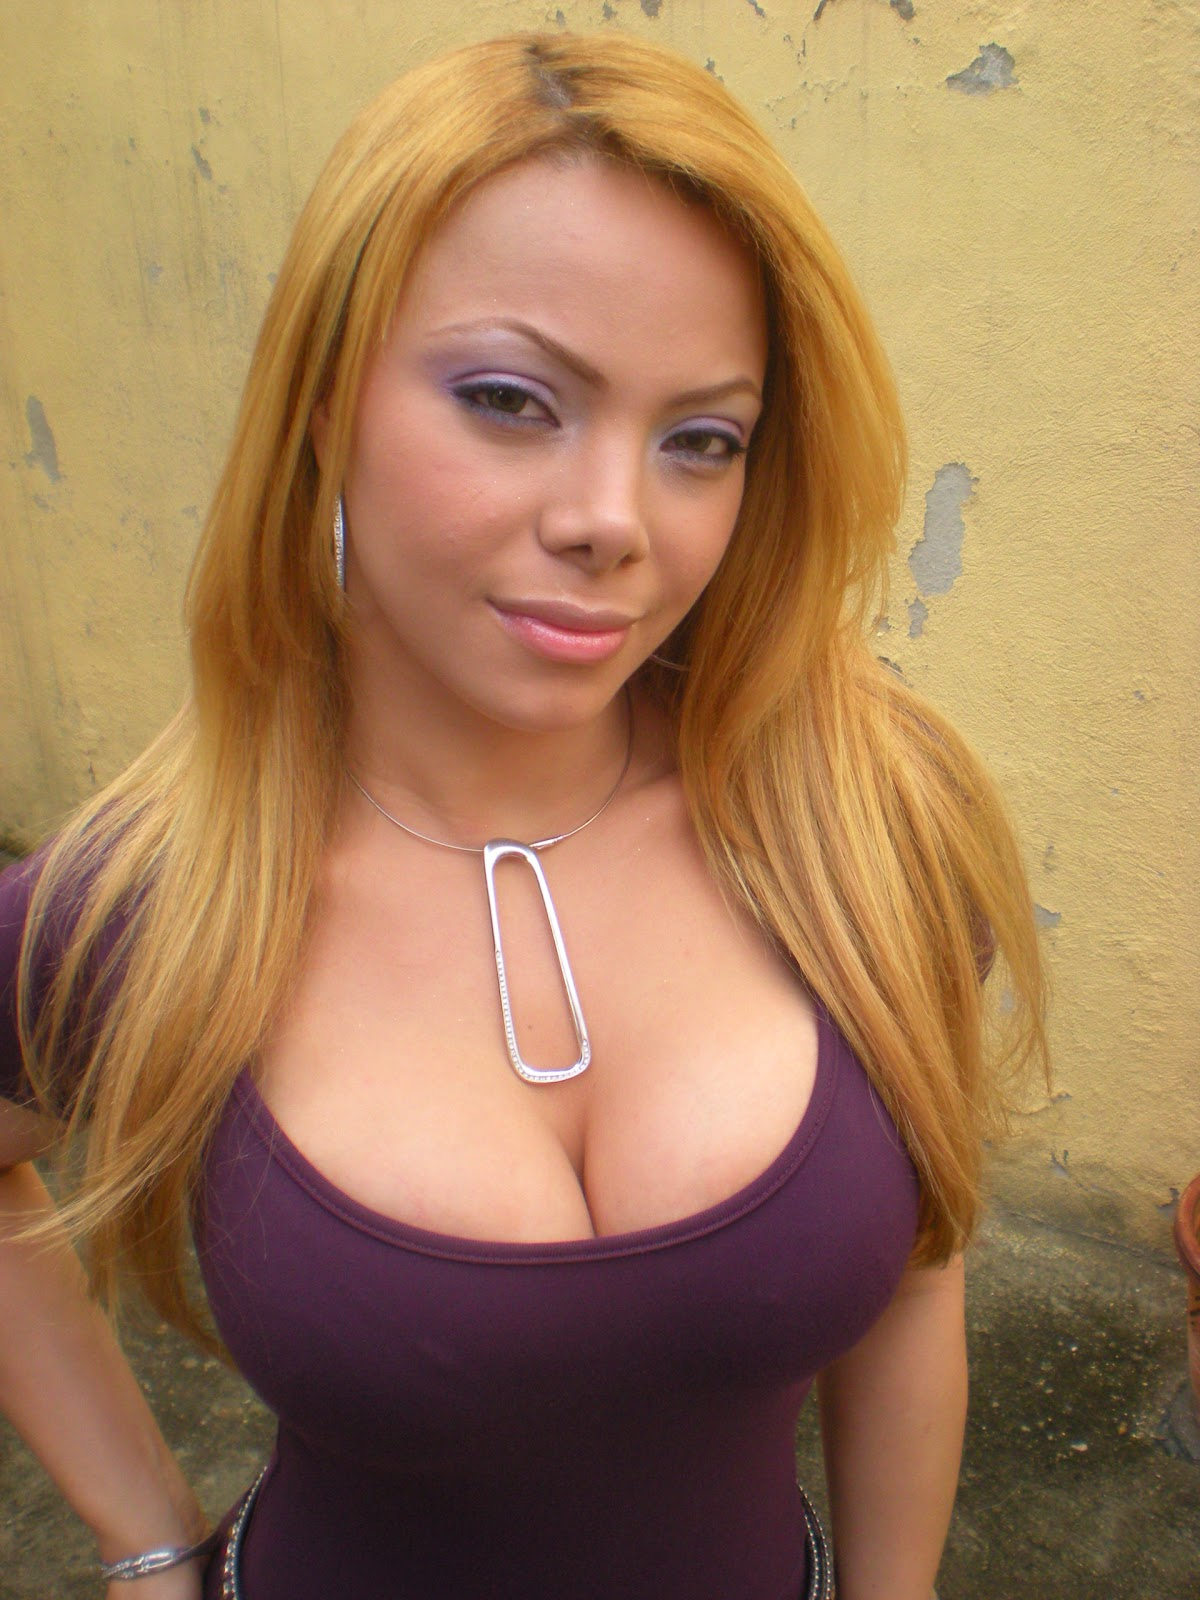 Pretty dominican women